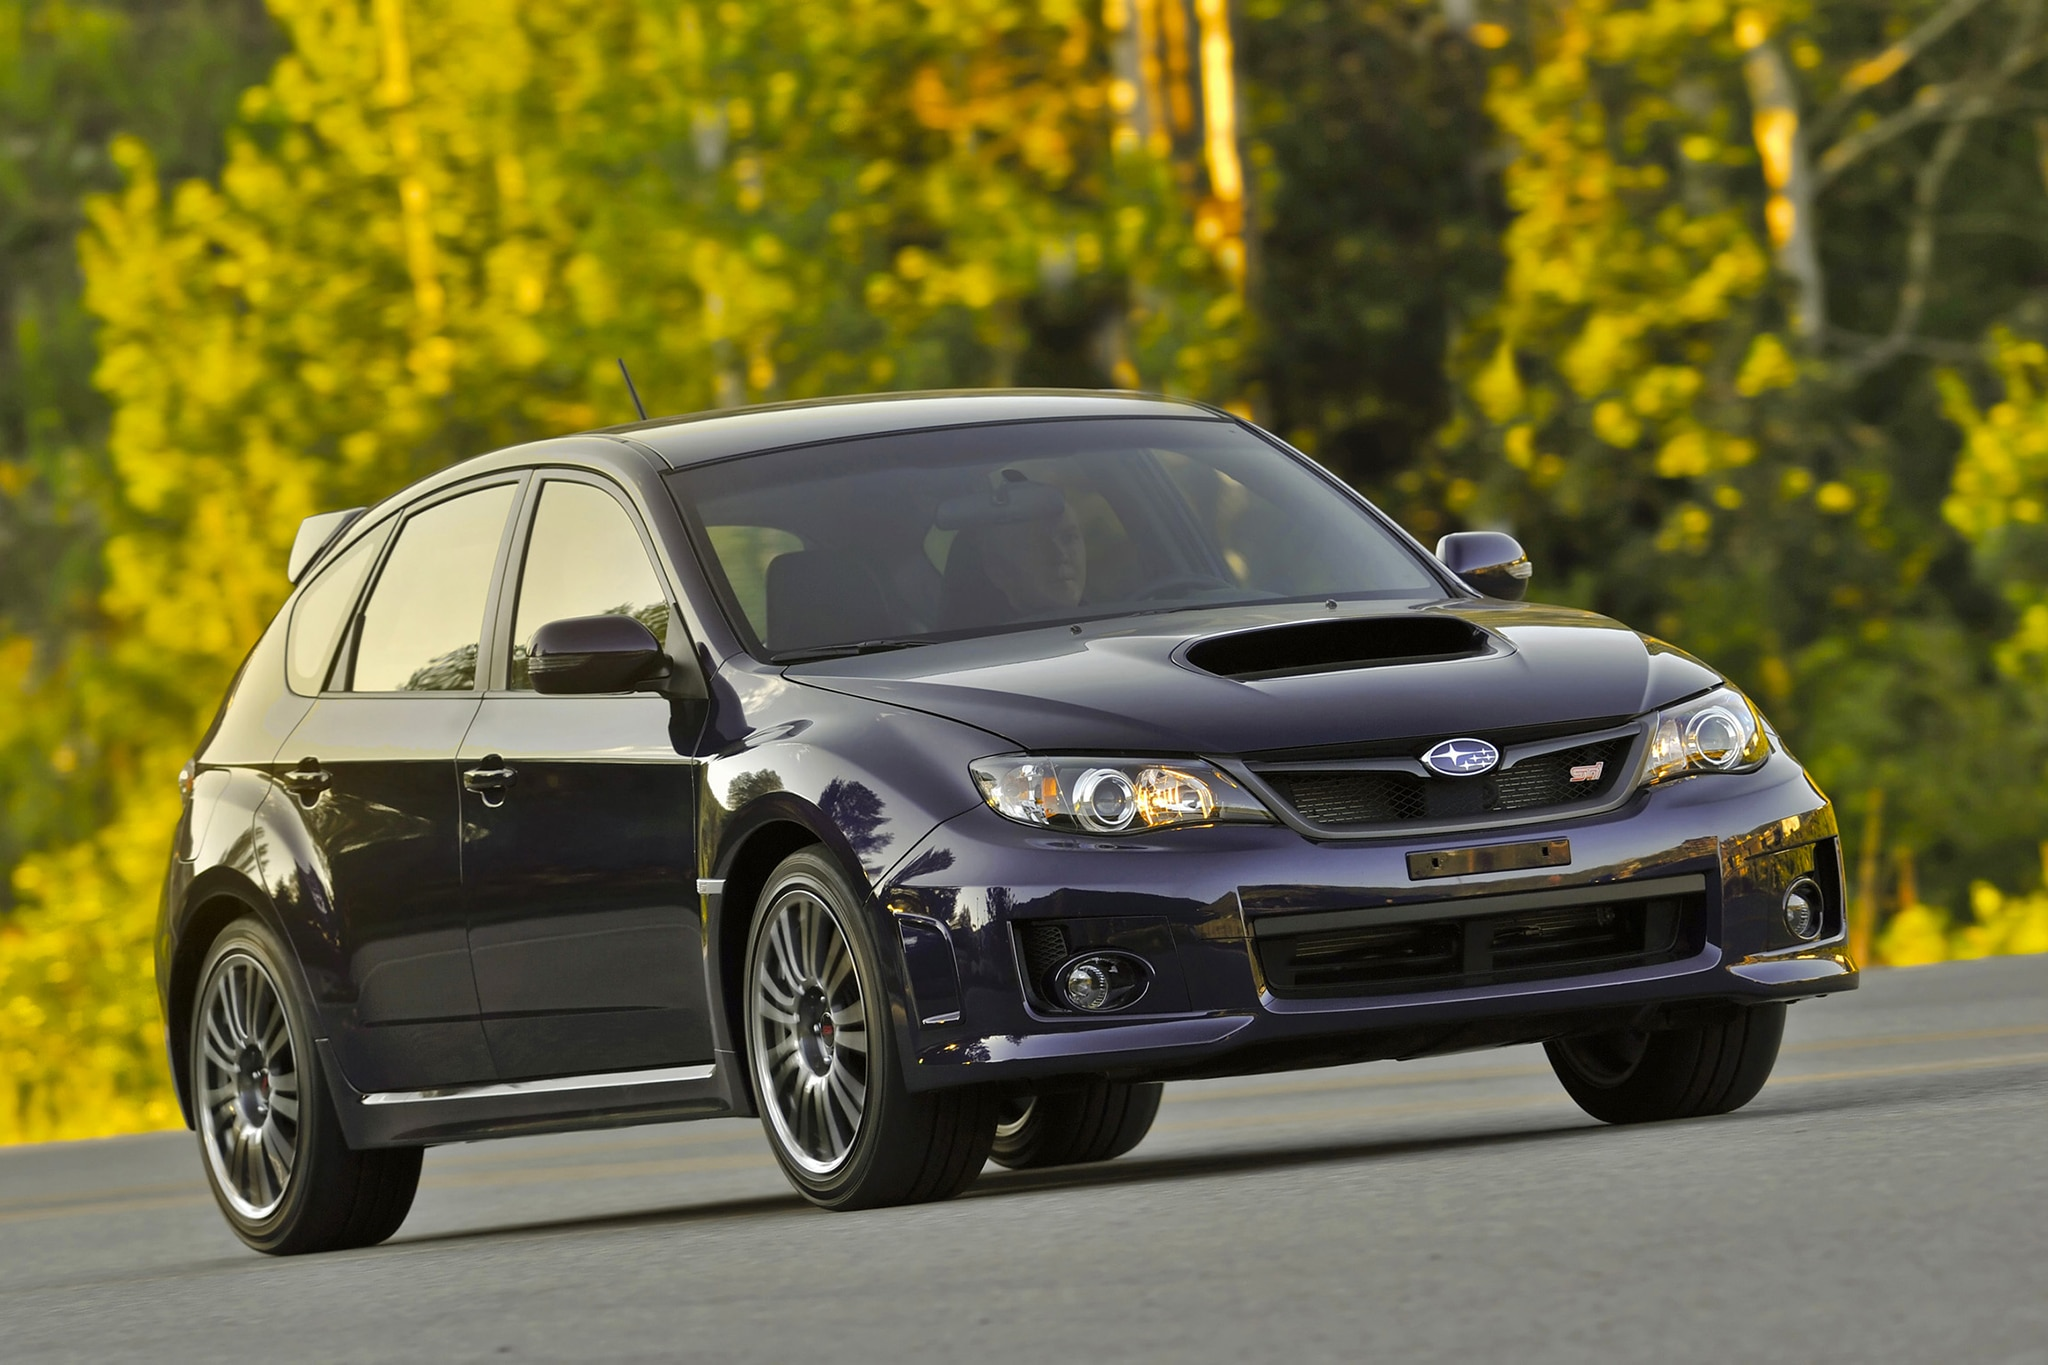 Guest commentary tale of two car brands subaru and volkswagen 2014 subaru wrx sti vanachro Images